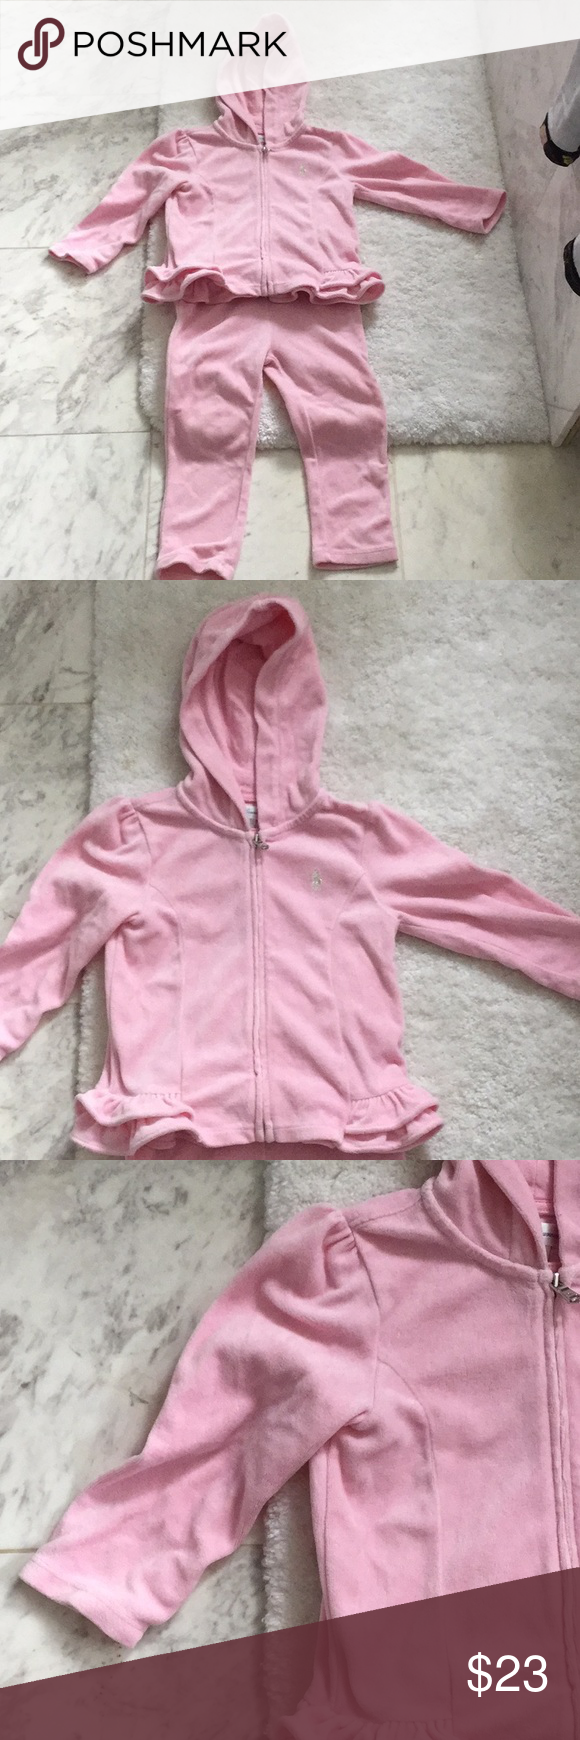 Velour Soft Baby Pink Sweatsuit Worn Once Pale Pink Breeze And Comfy